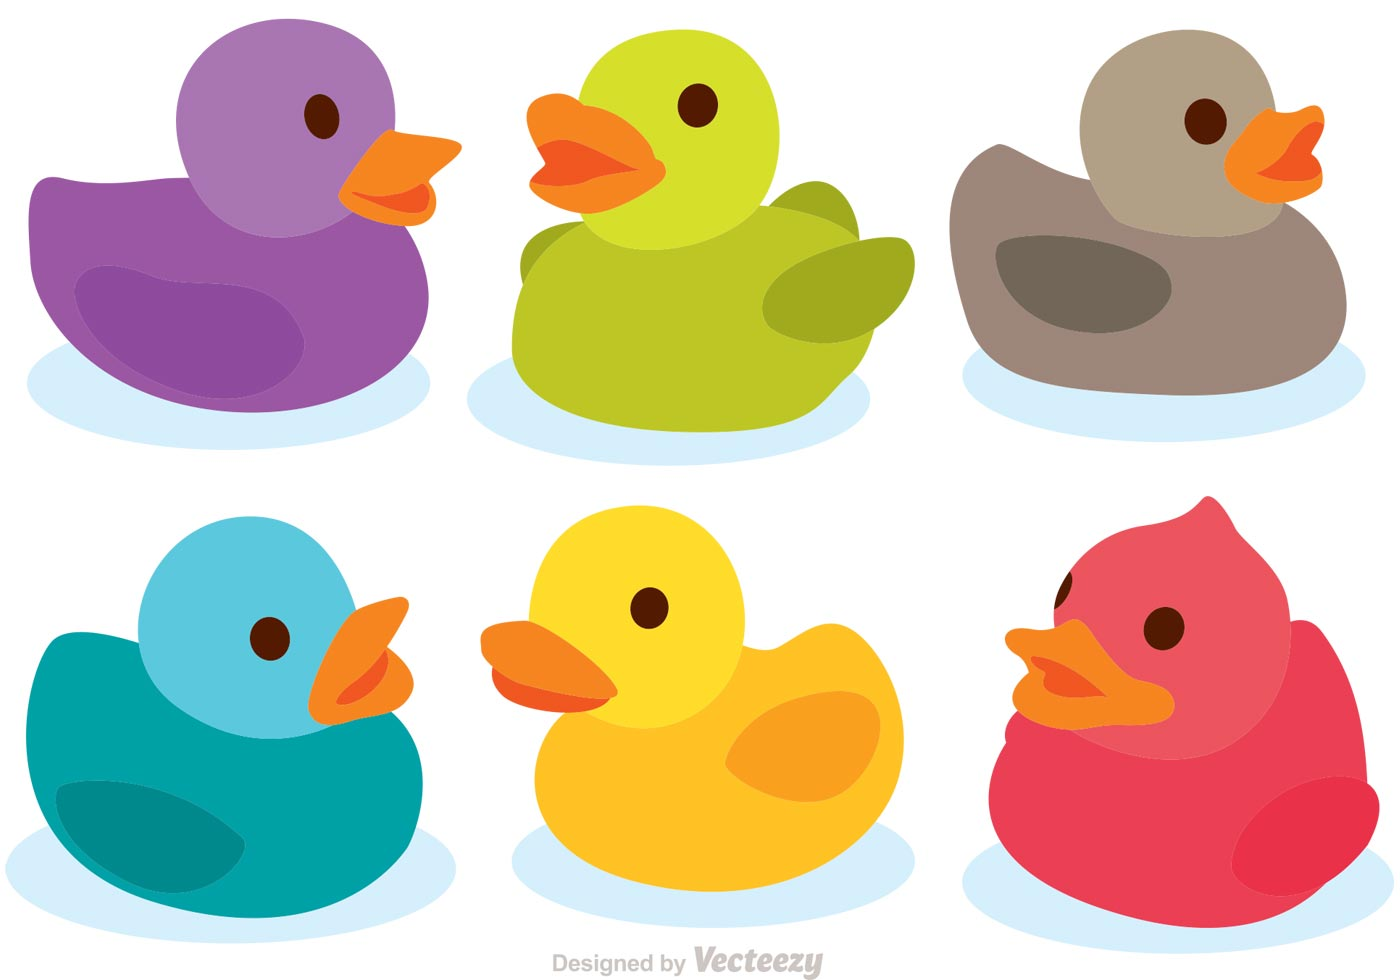 Colorful Rubber Duck Vectors - Download Free Vector Art, Stock Graphics & Images